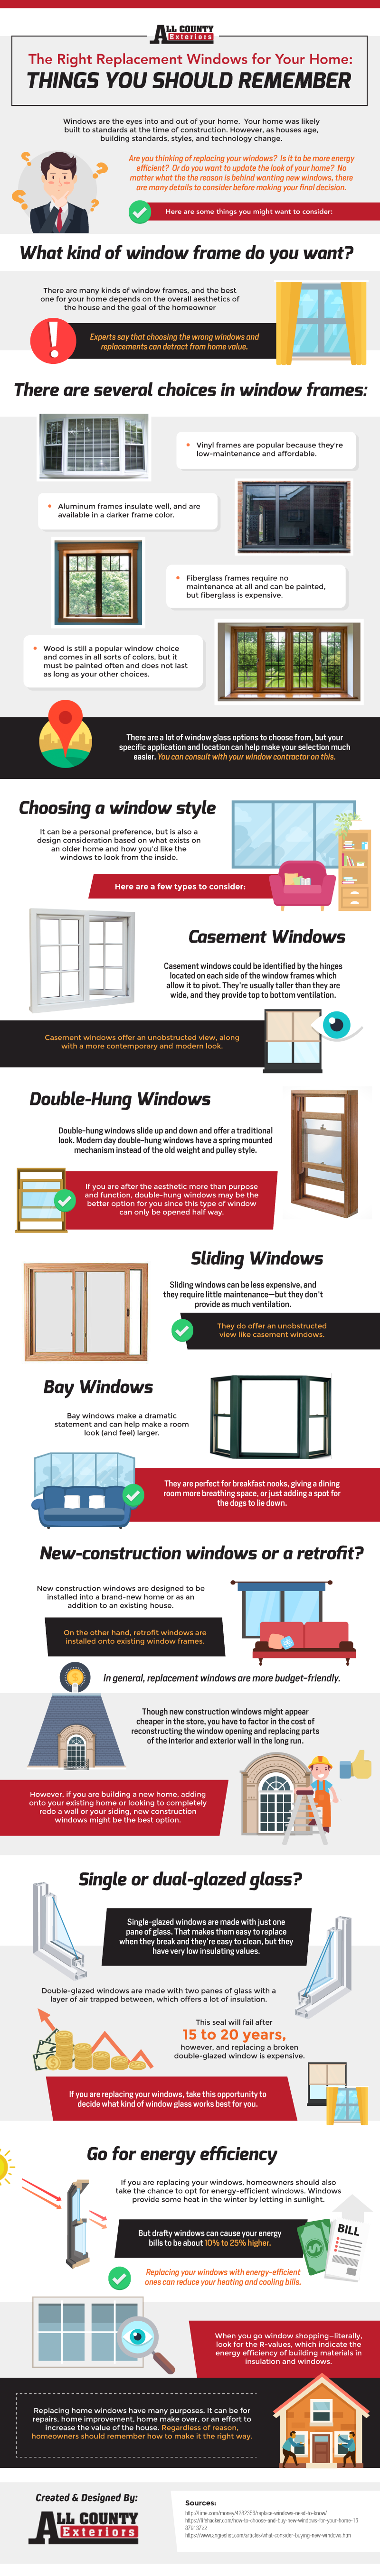 Replacement Windows Where And What In The World